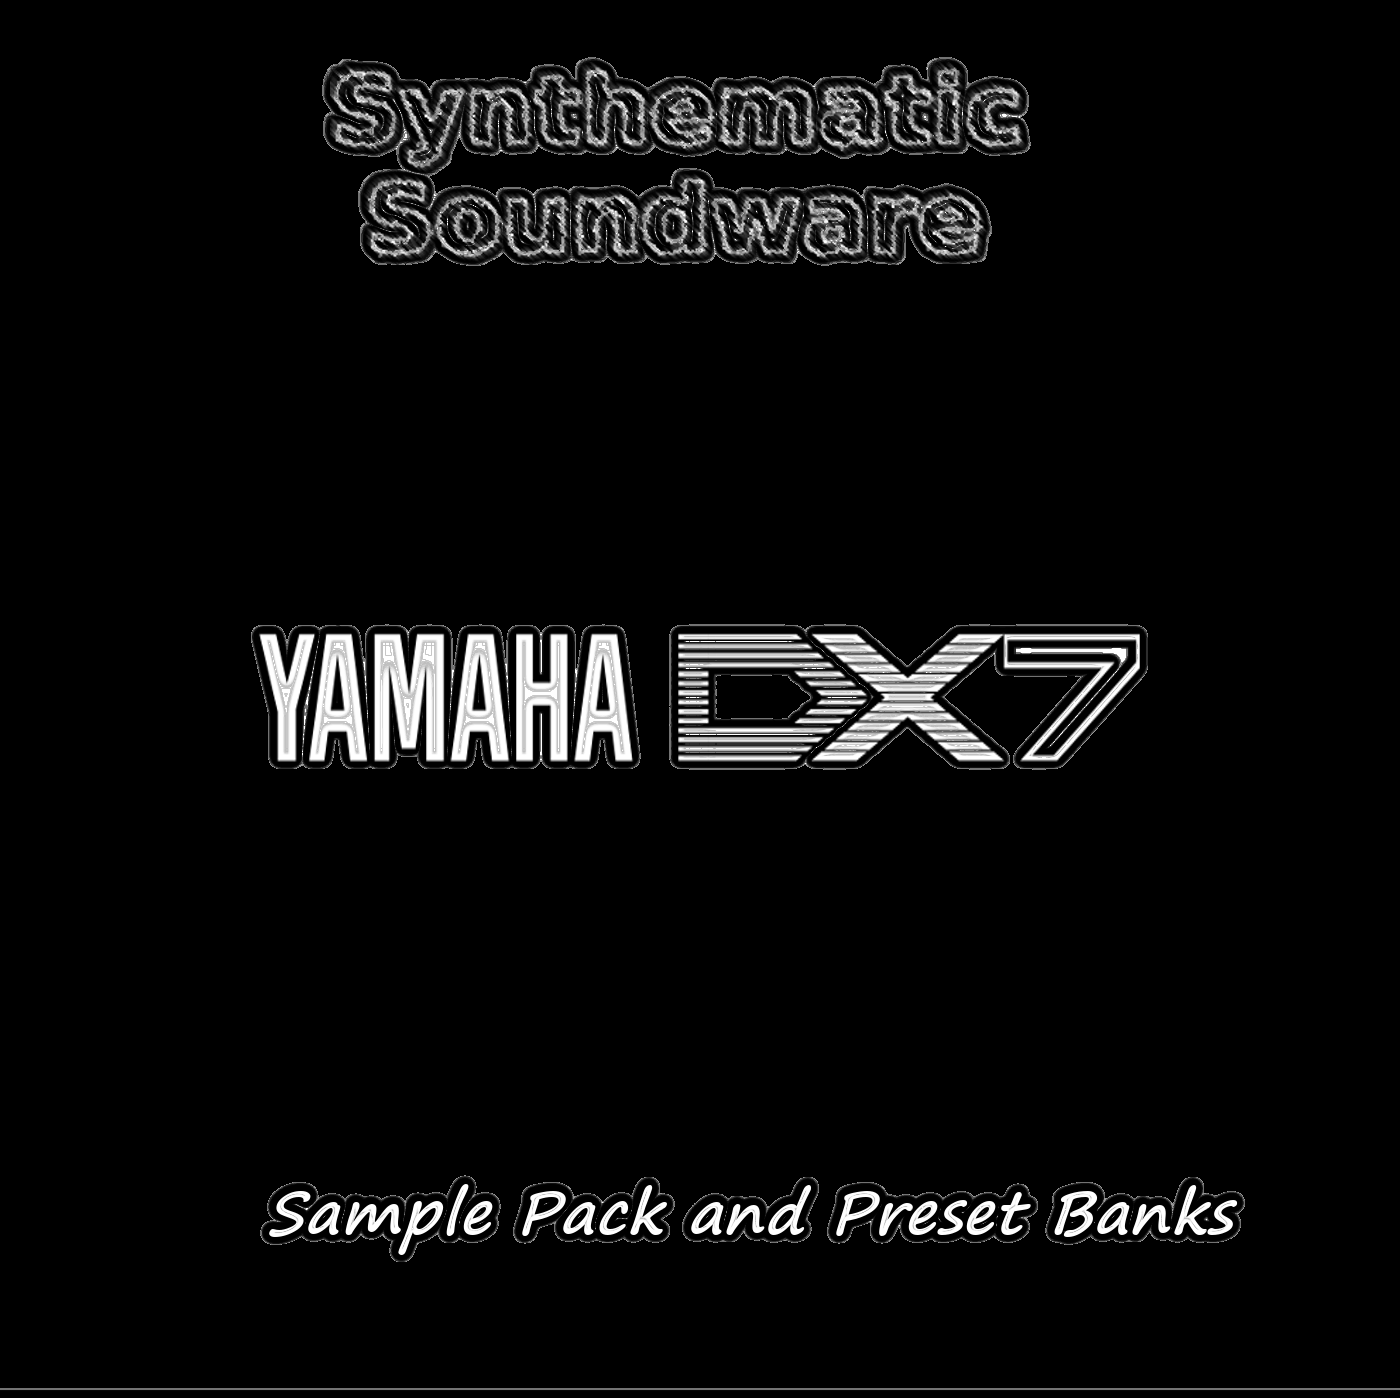 Yamaha DX7 Sample Pack and Preset Banks by Synthematic